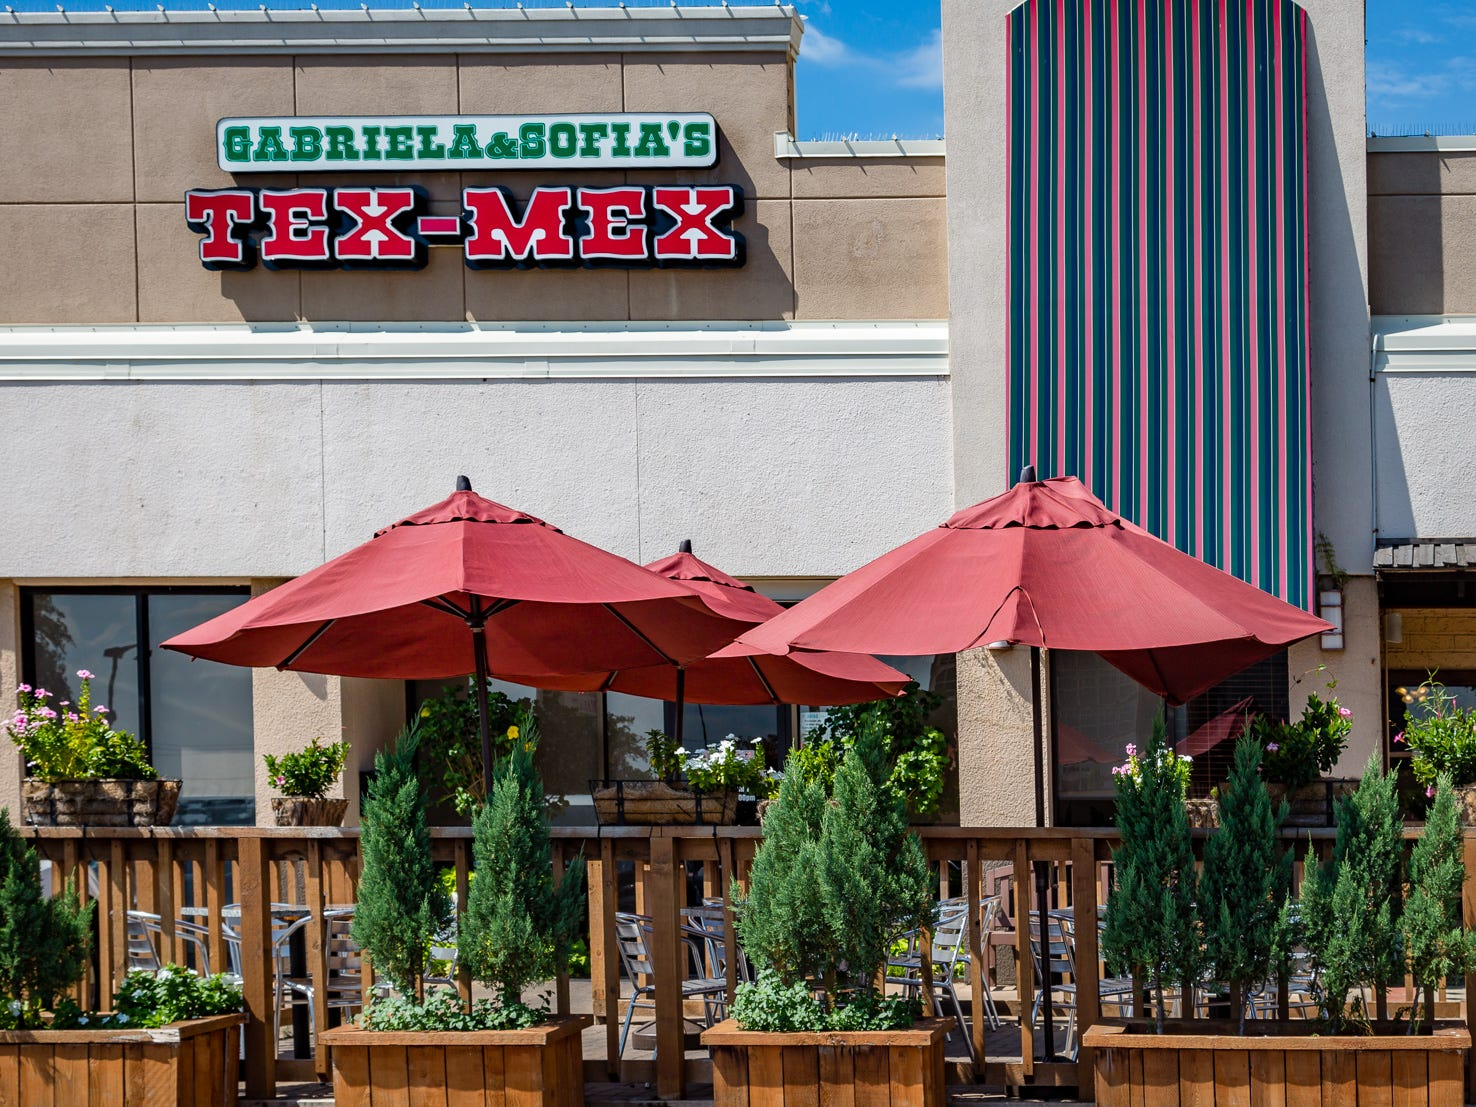 Gabriela and Sofia's Tex-Mex restaurant is a relative newcomer to Dallas, but don't let the strip-center location deter you from visiting; the from-scratch menu offers some of the best Tex-Mex in town.